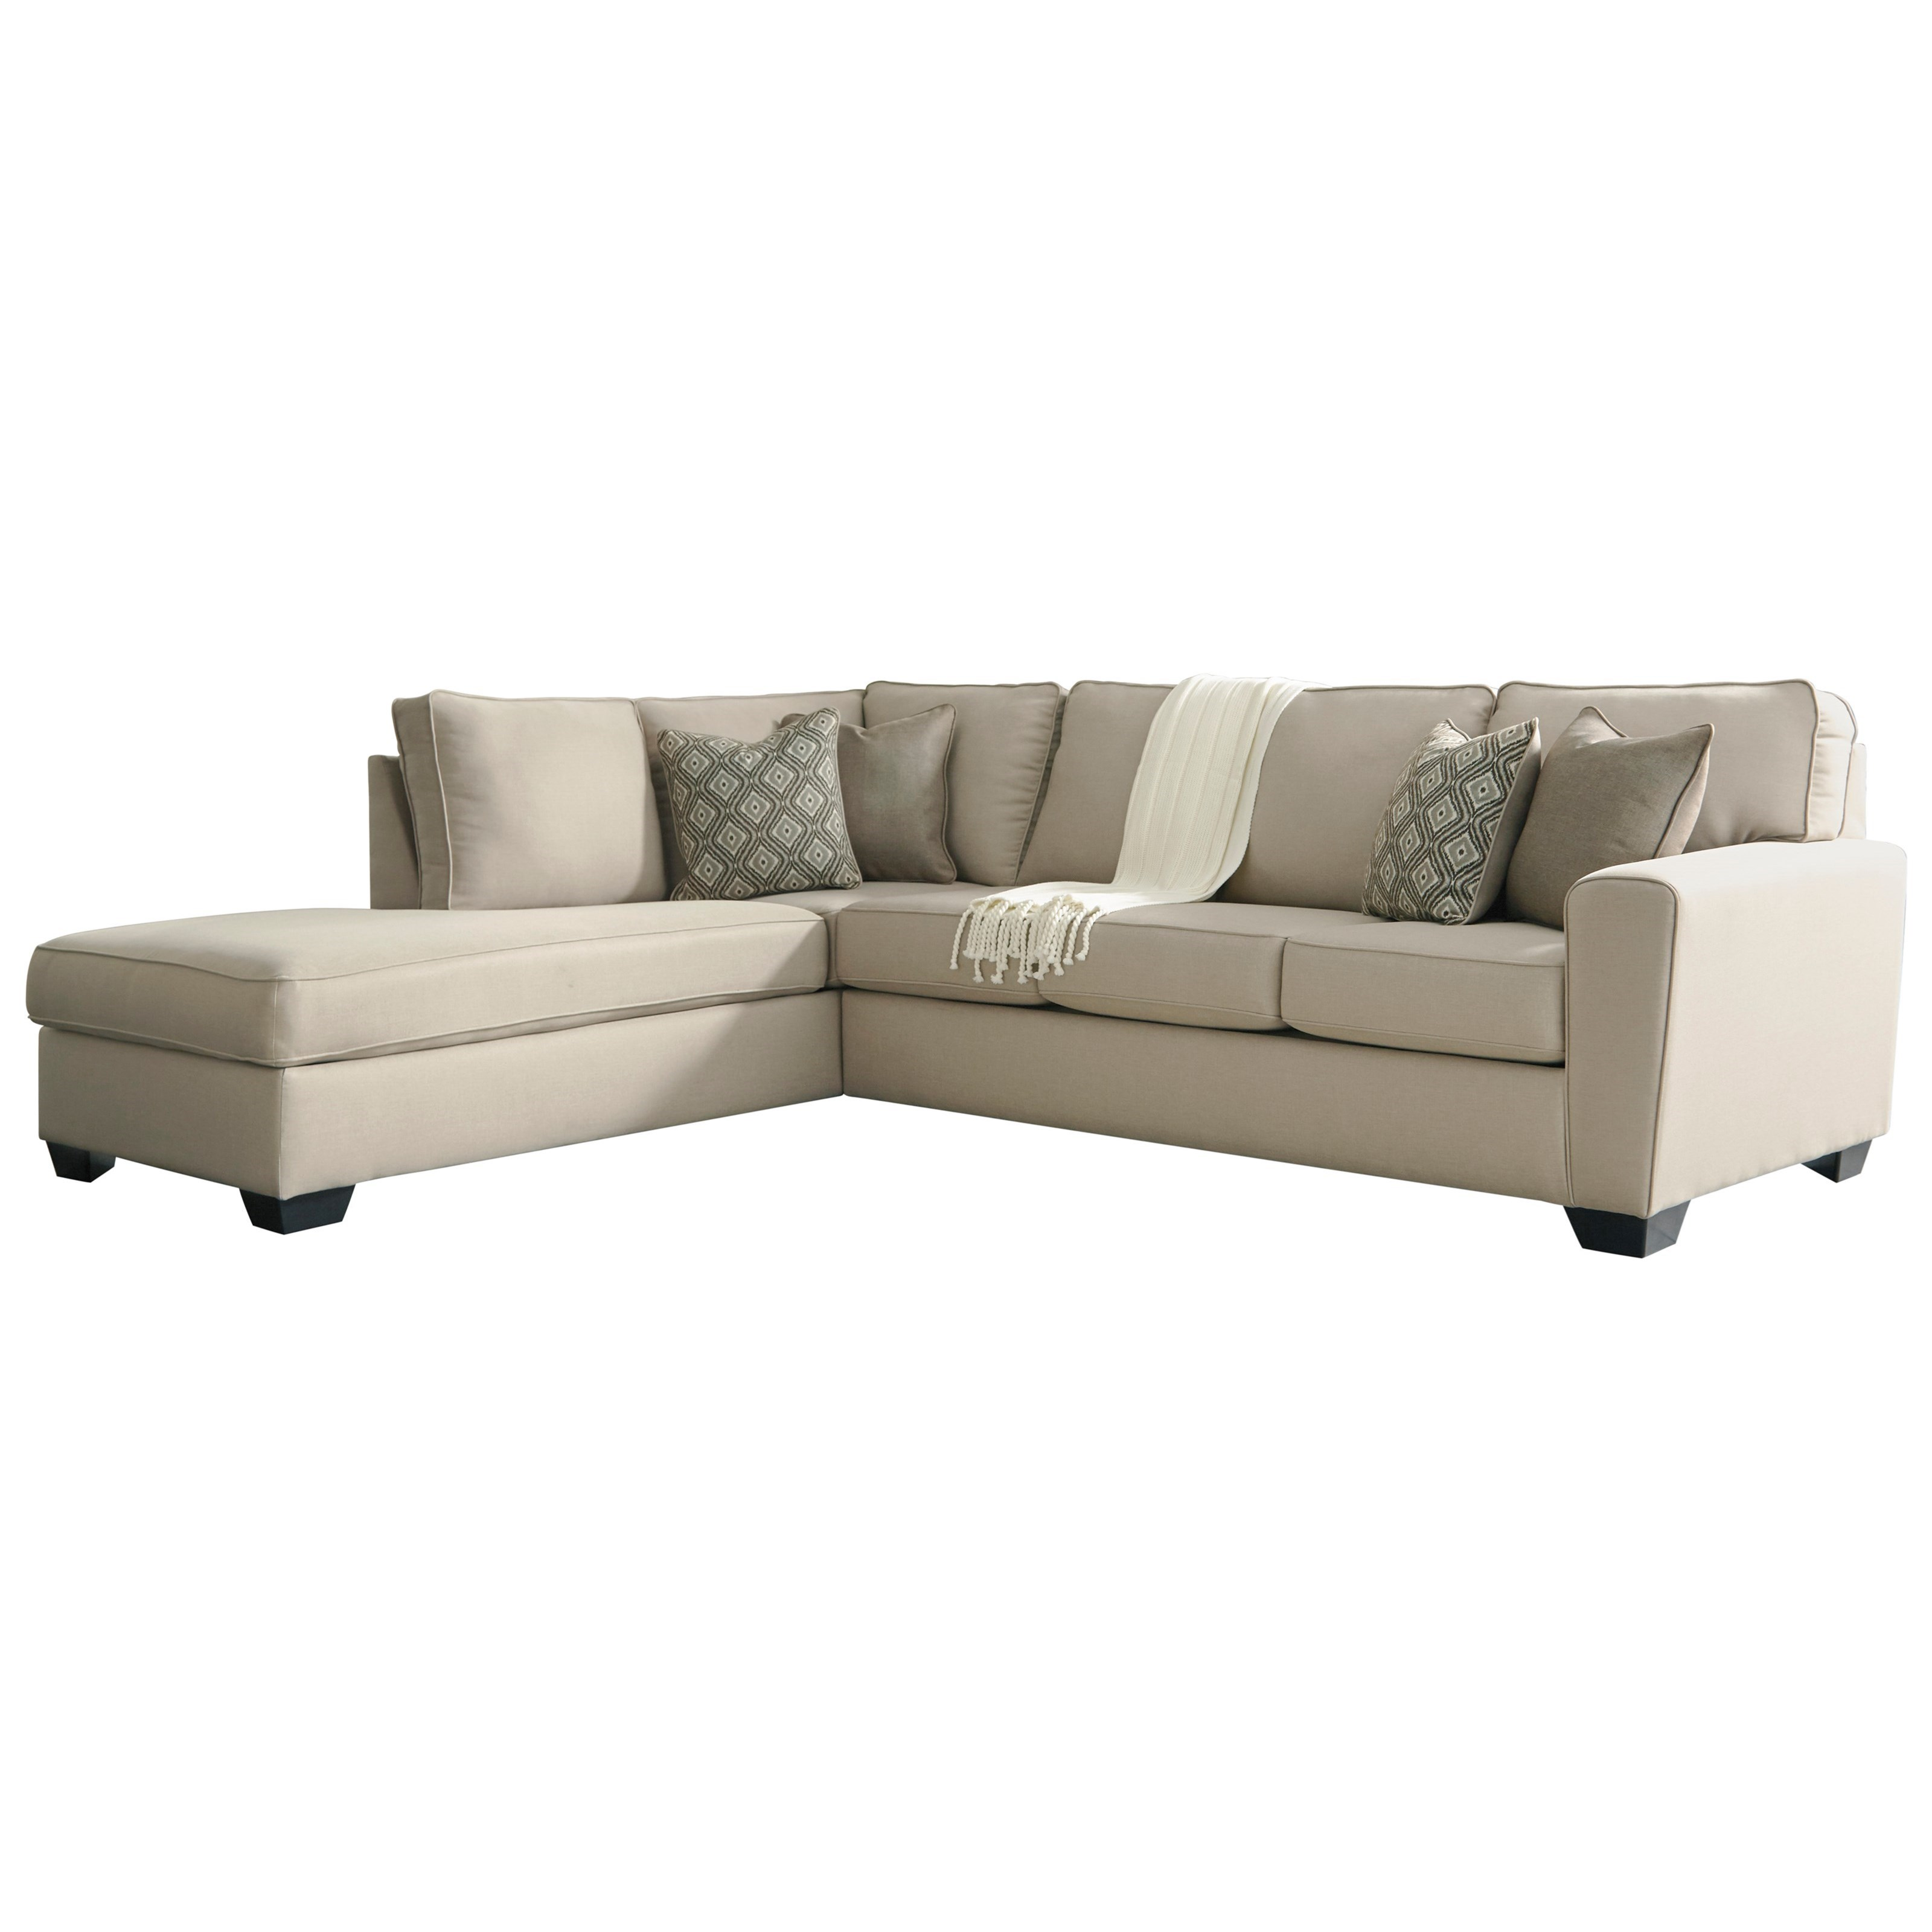 left chaise sofa sectional slipcover fundas para sofas en lima peru benchcraft calicho contemporary with